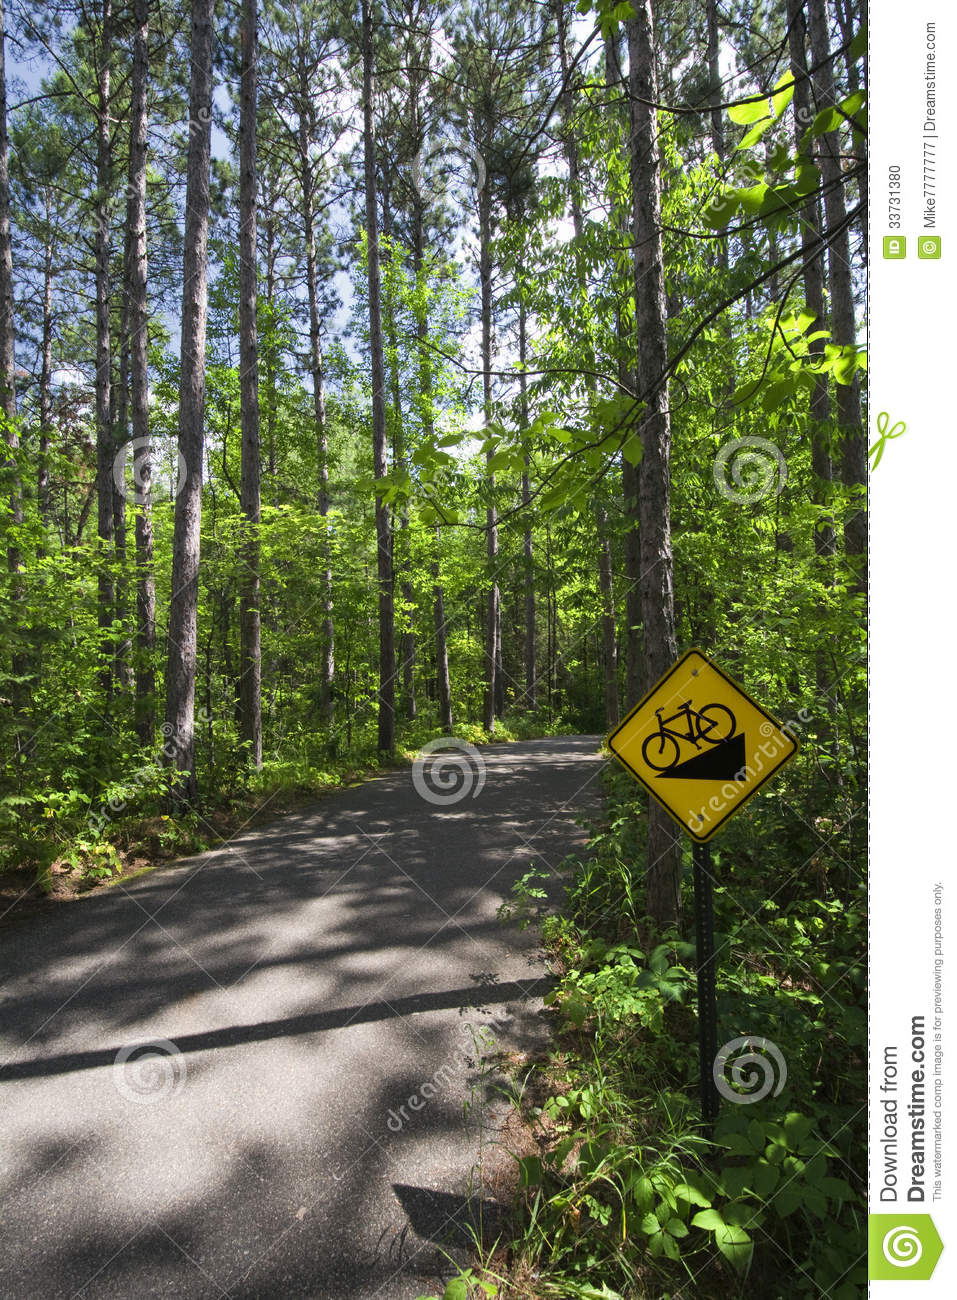 Downhill bike sign in Itasca State Park, Northern Minnesota, USA